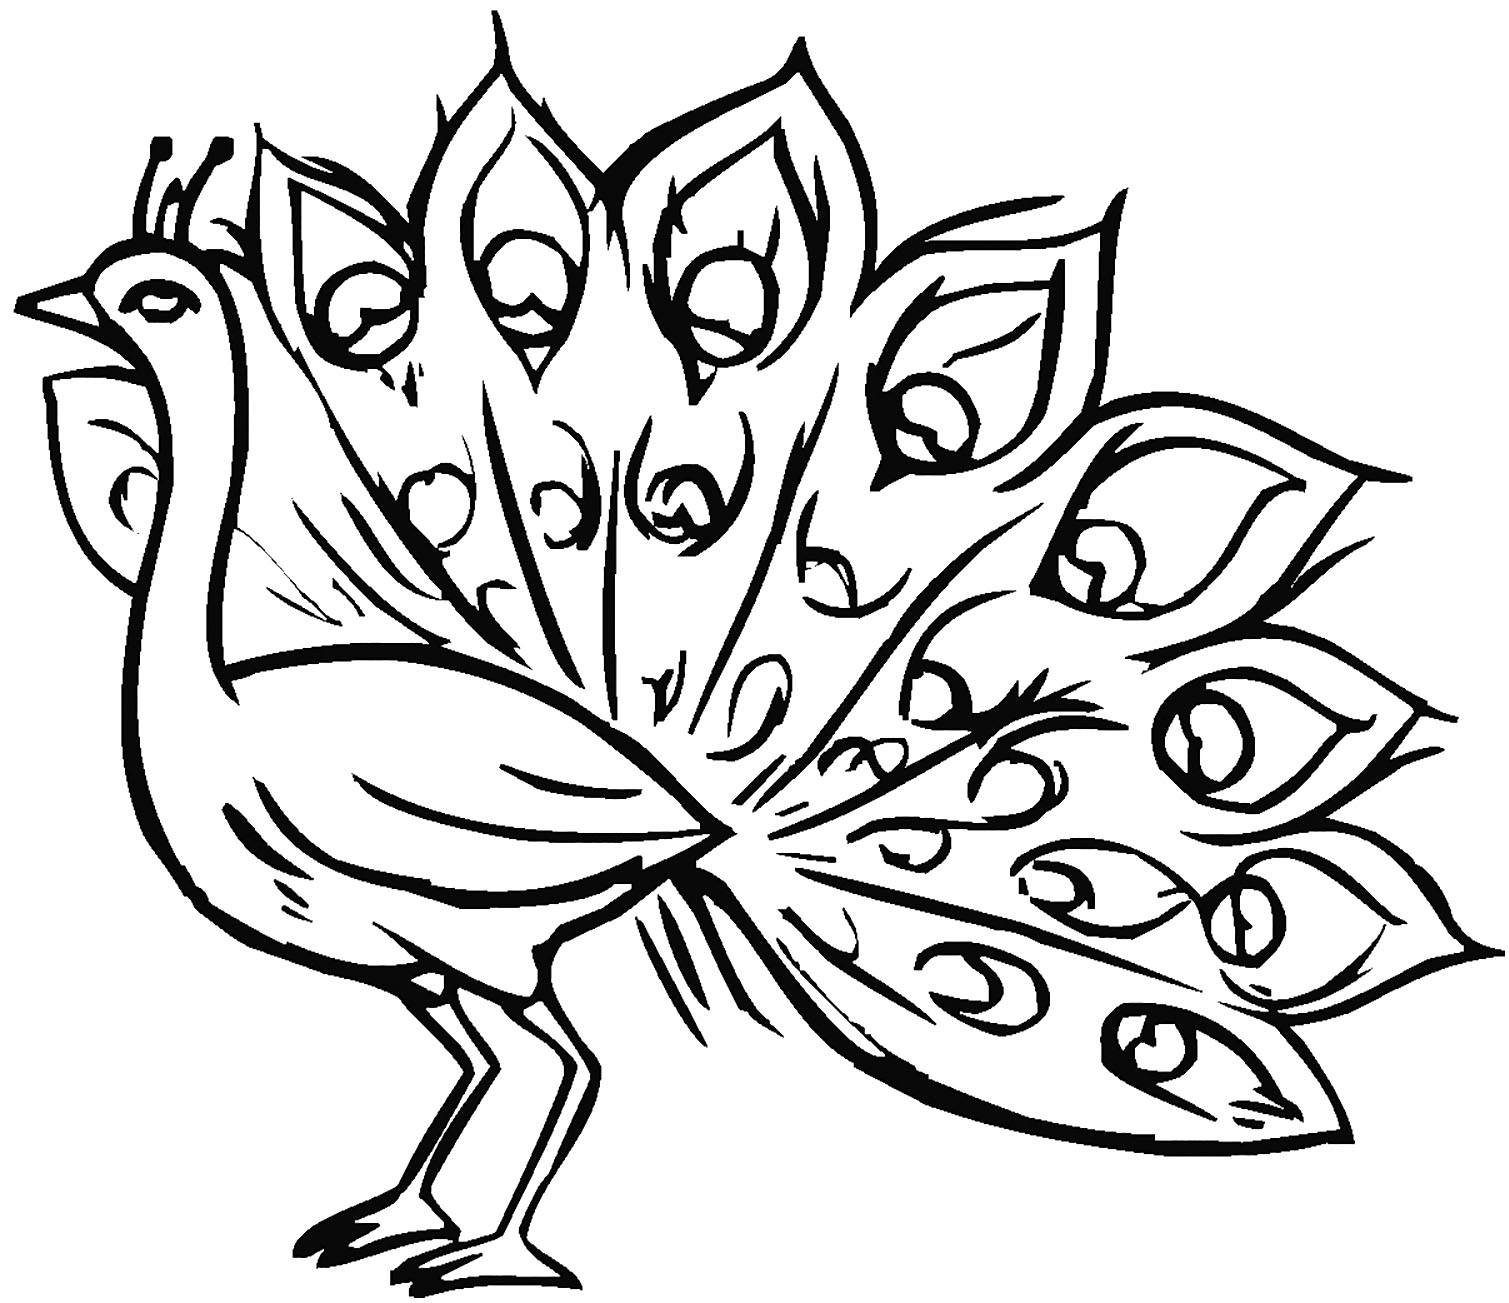 picture of peacock to color peacock coloring pages for kids to peacock picture of color